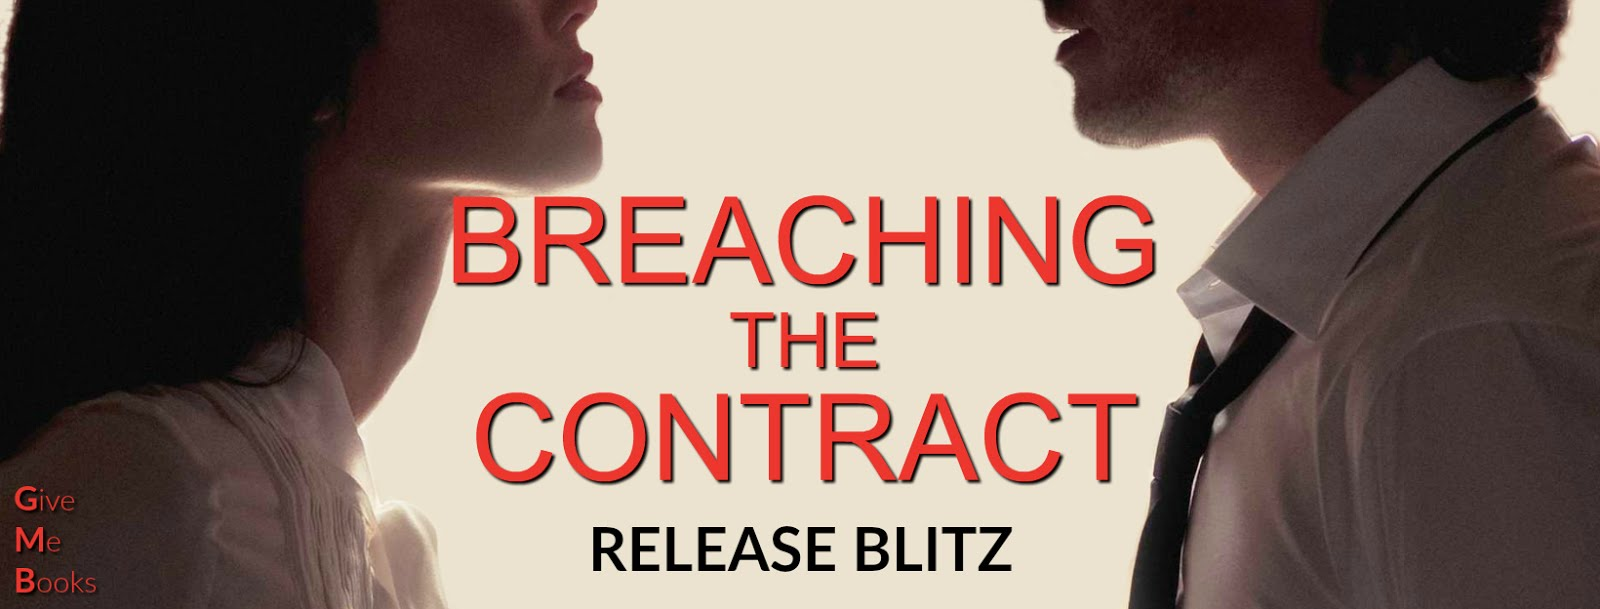 Breaching The Contract Release Blitz